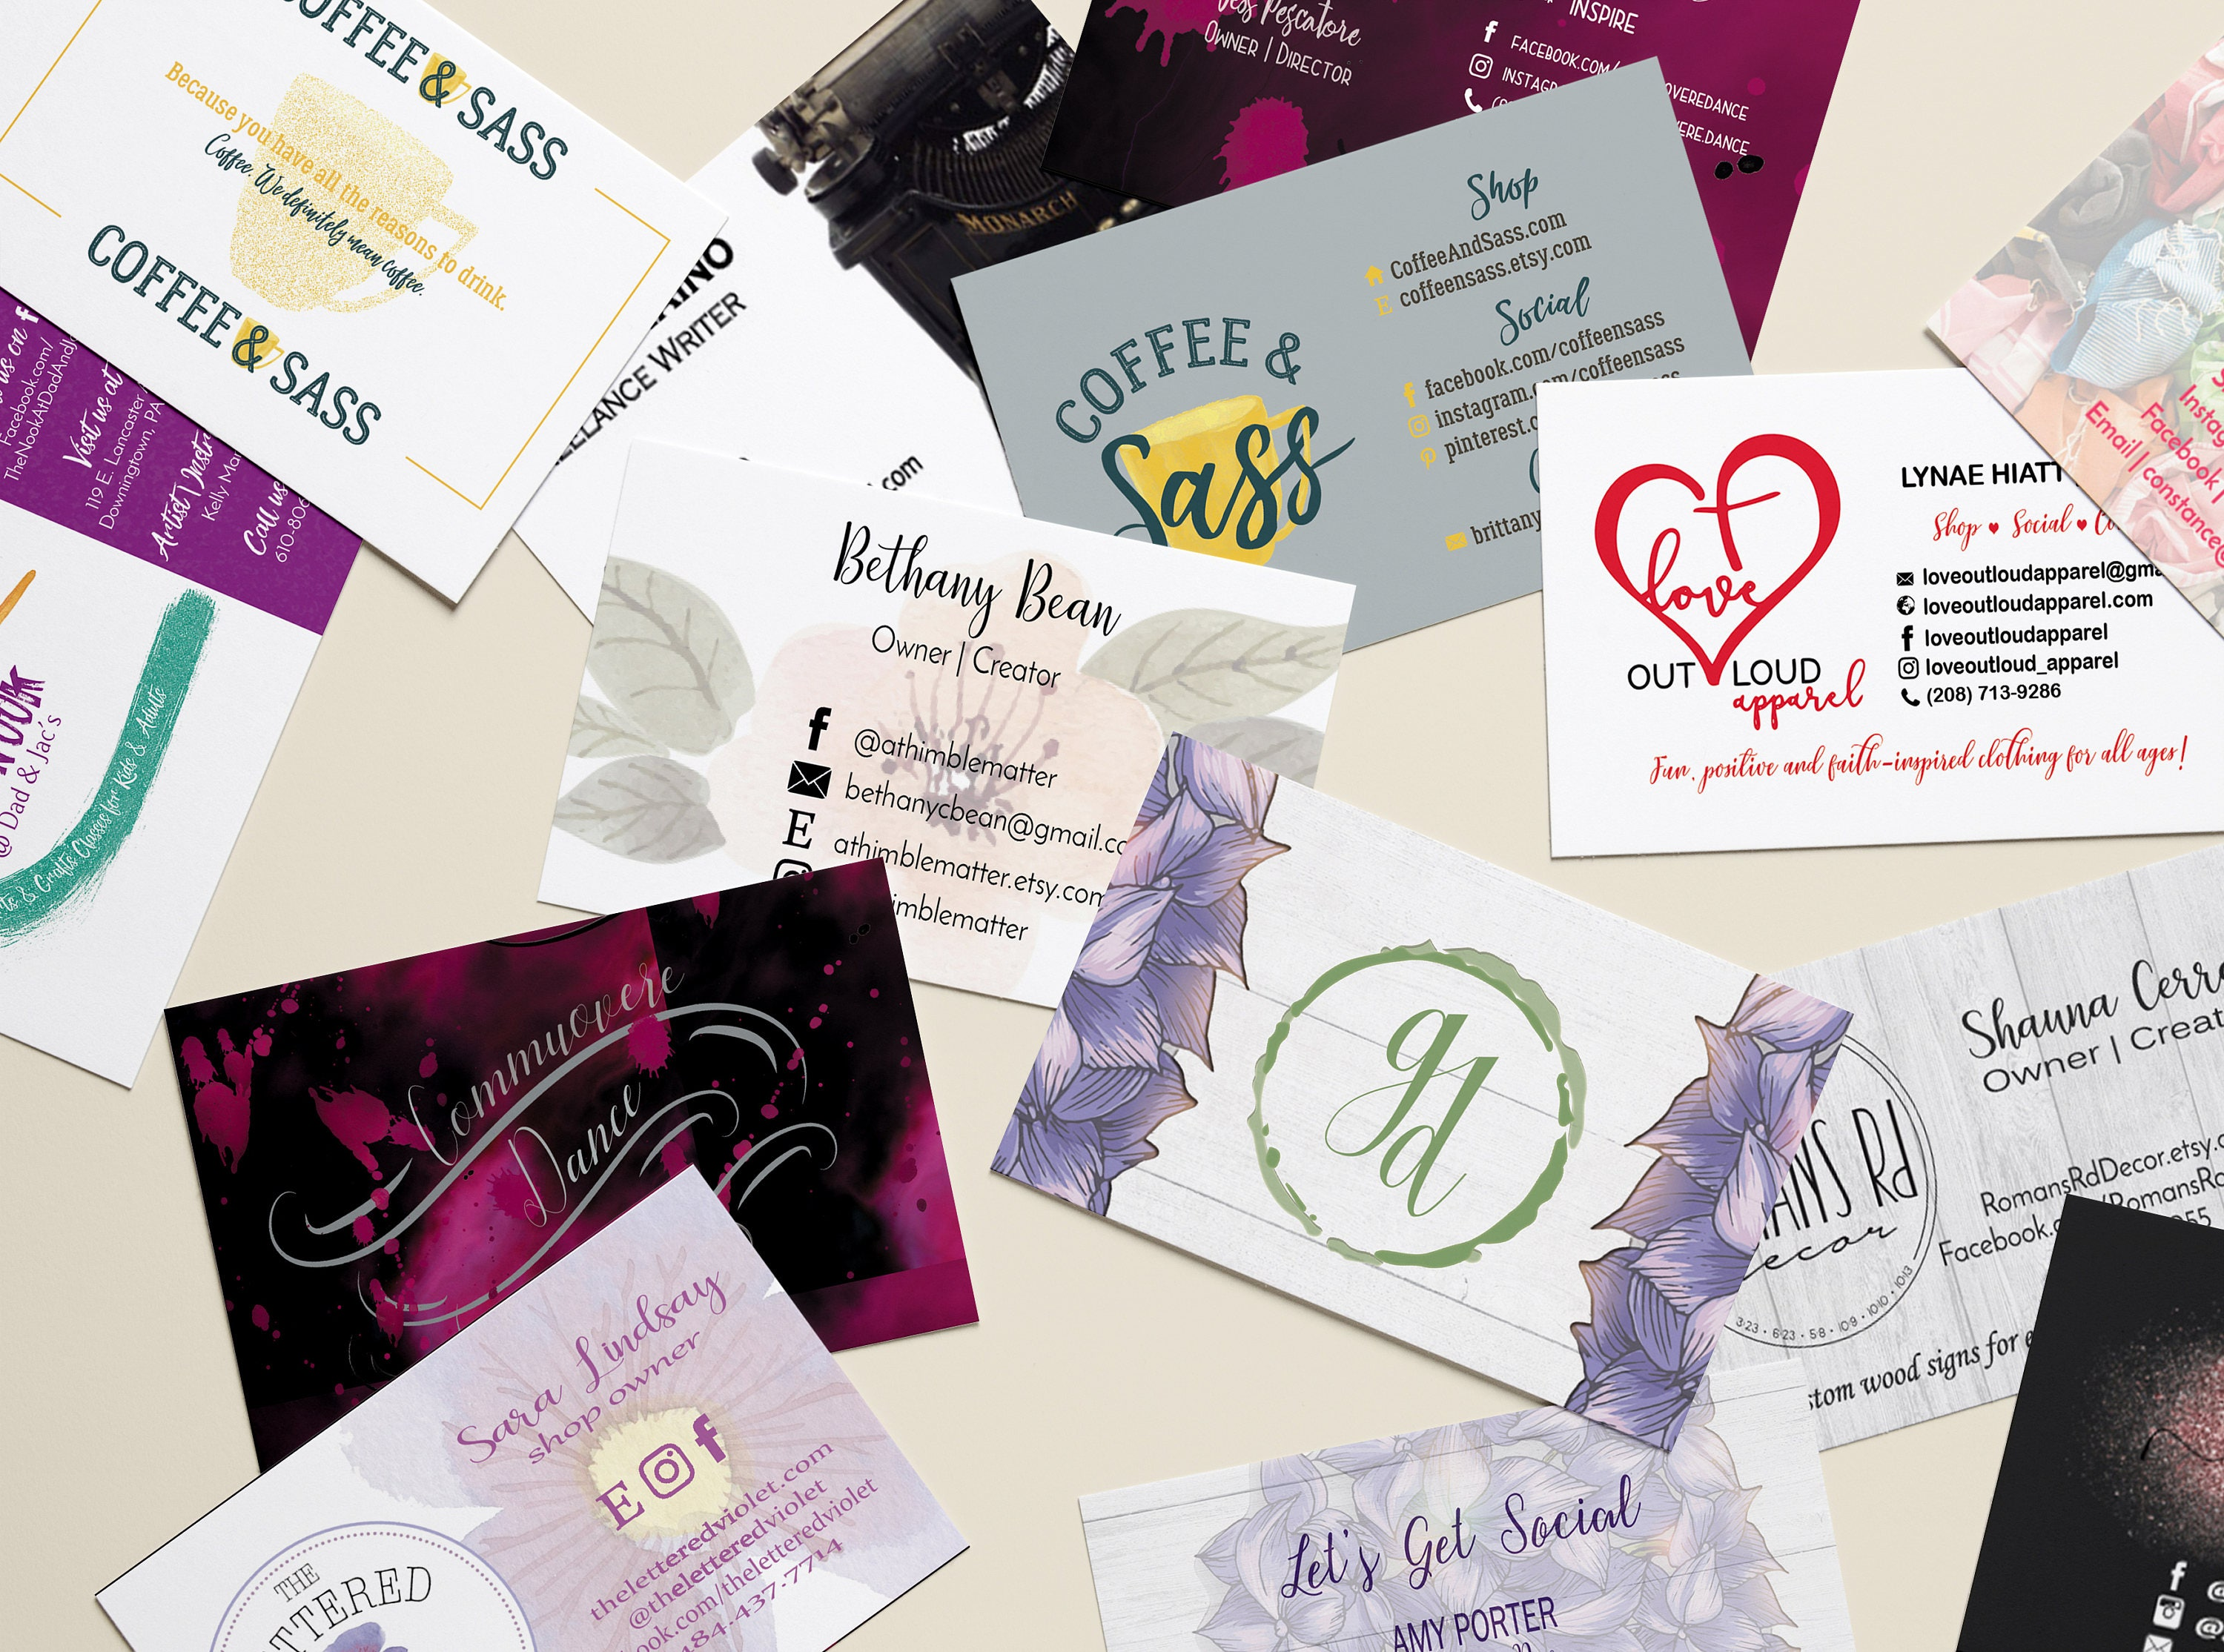 business cards business card design business card printing custom business cards graphic design printed business cards - Print Custom Business Cards